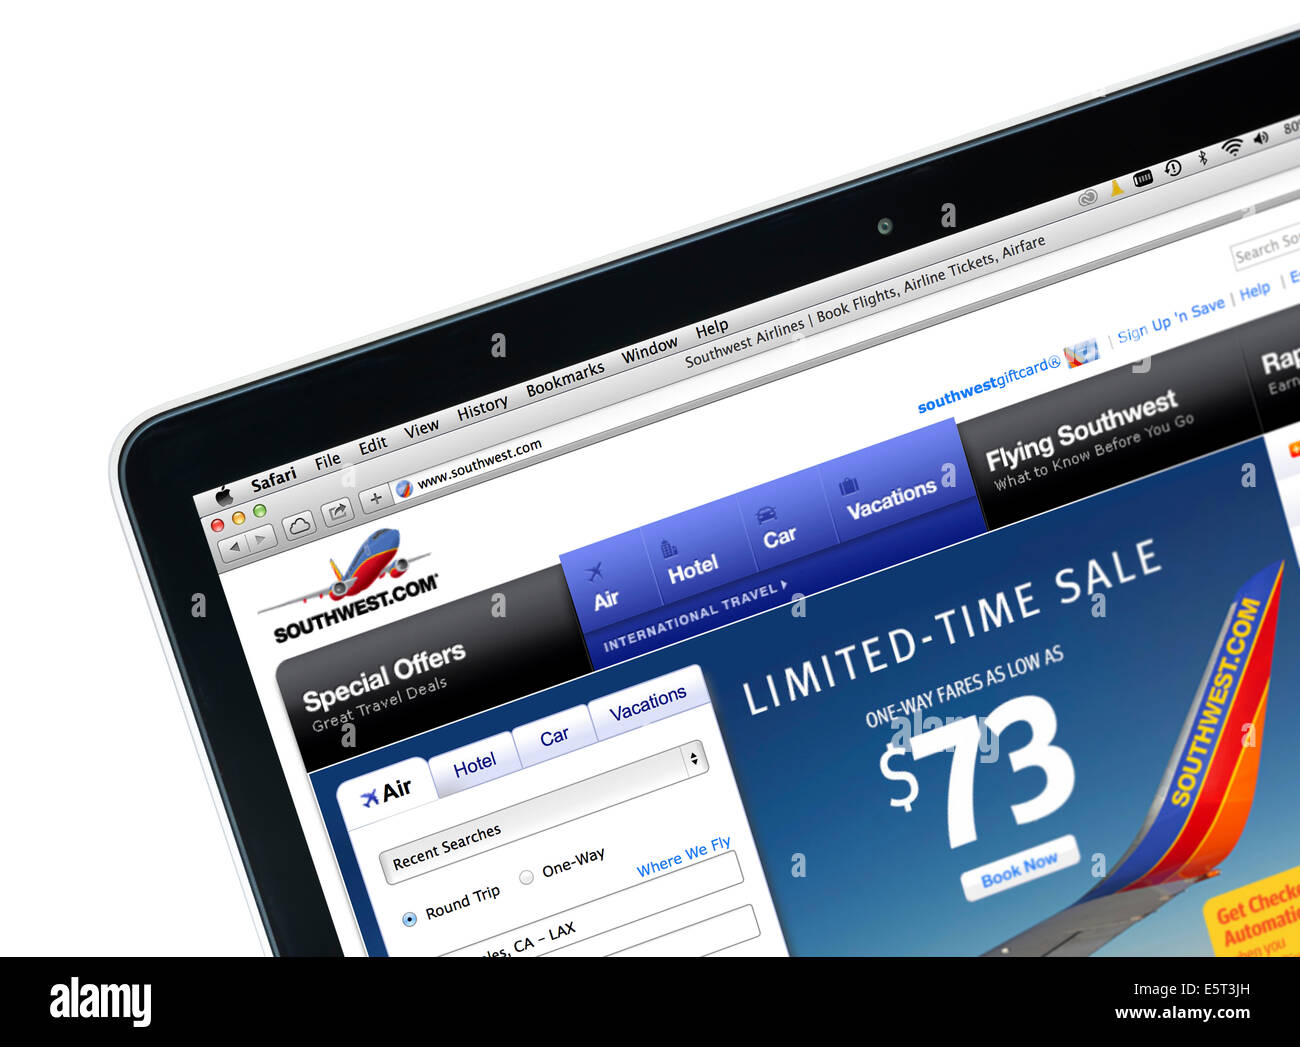 Booking a Southwest Airlines flight on a 13' Apple MacBook Pro computer, USA - Stock Image